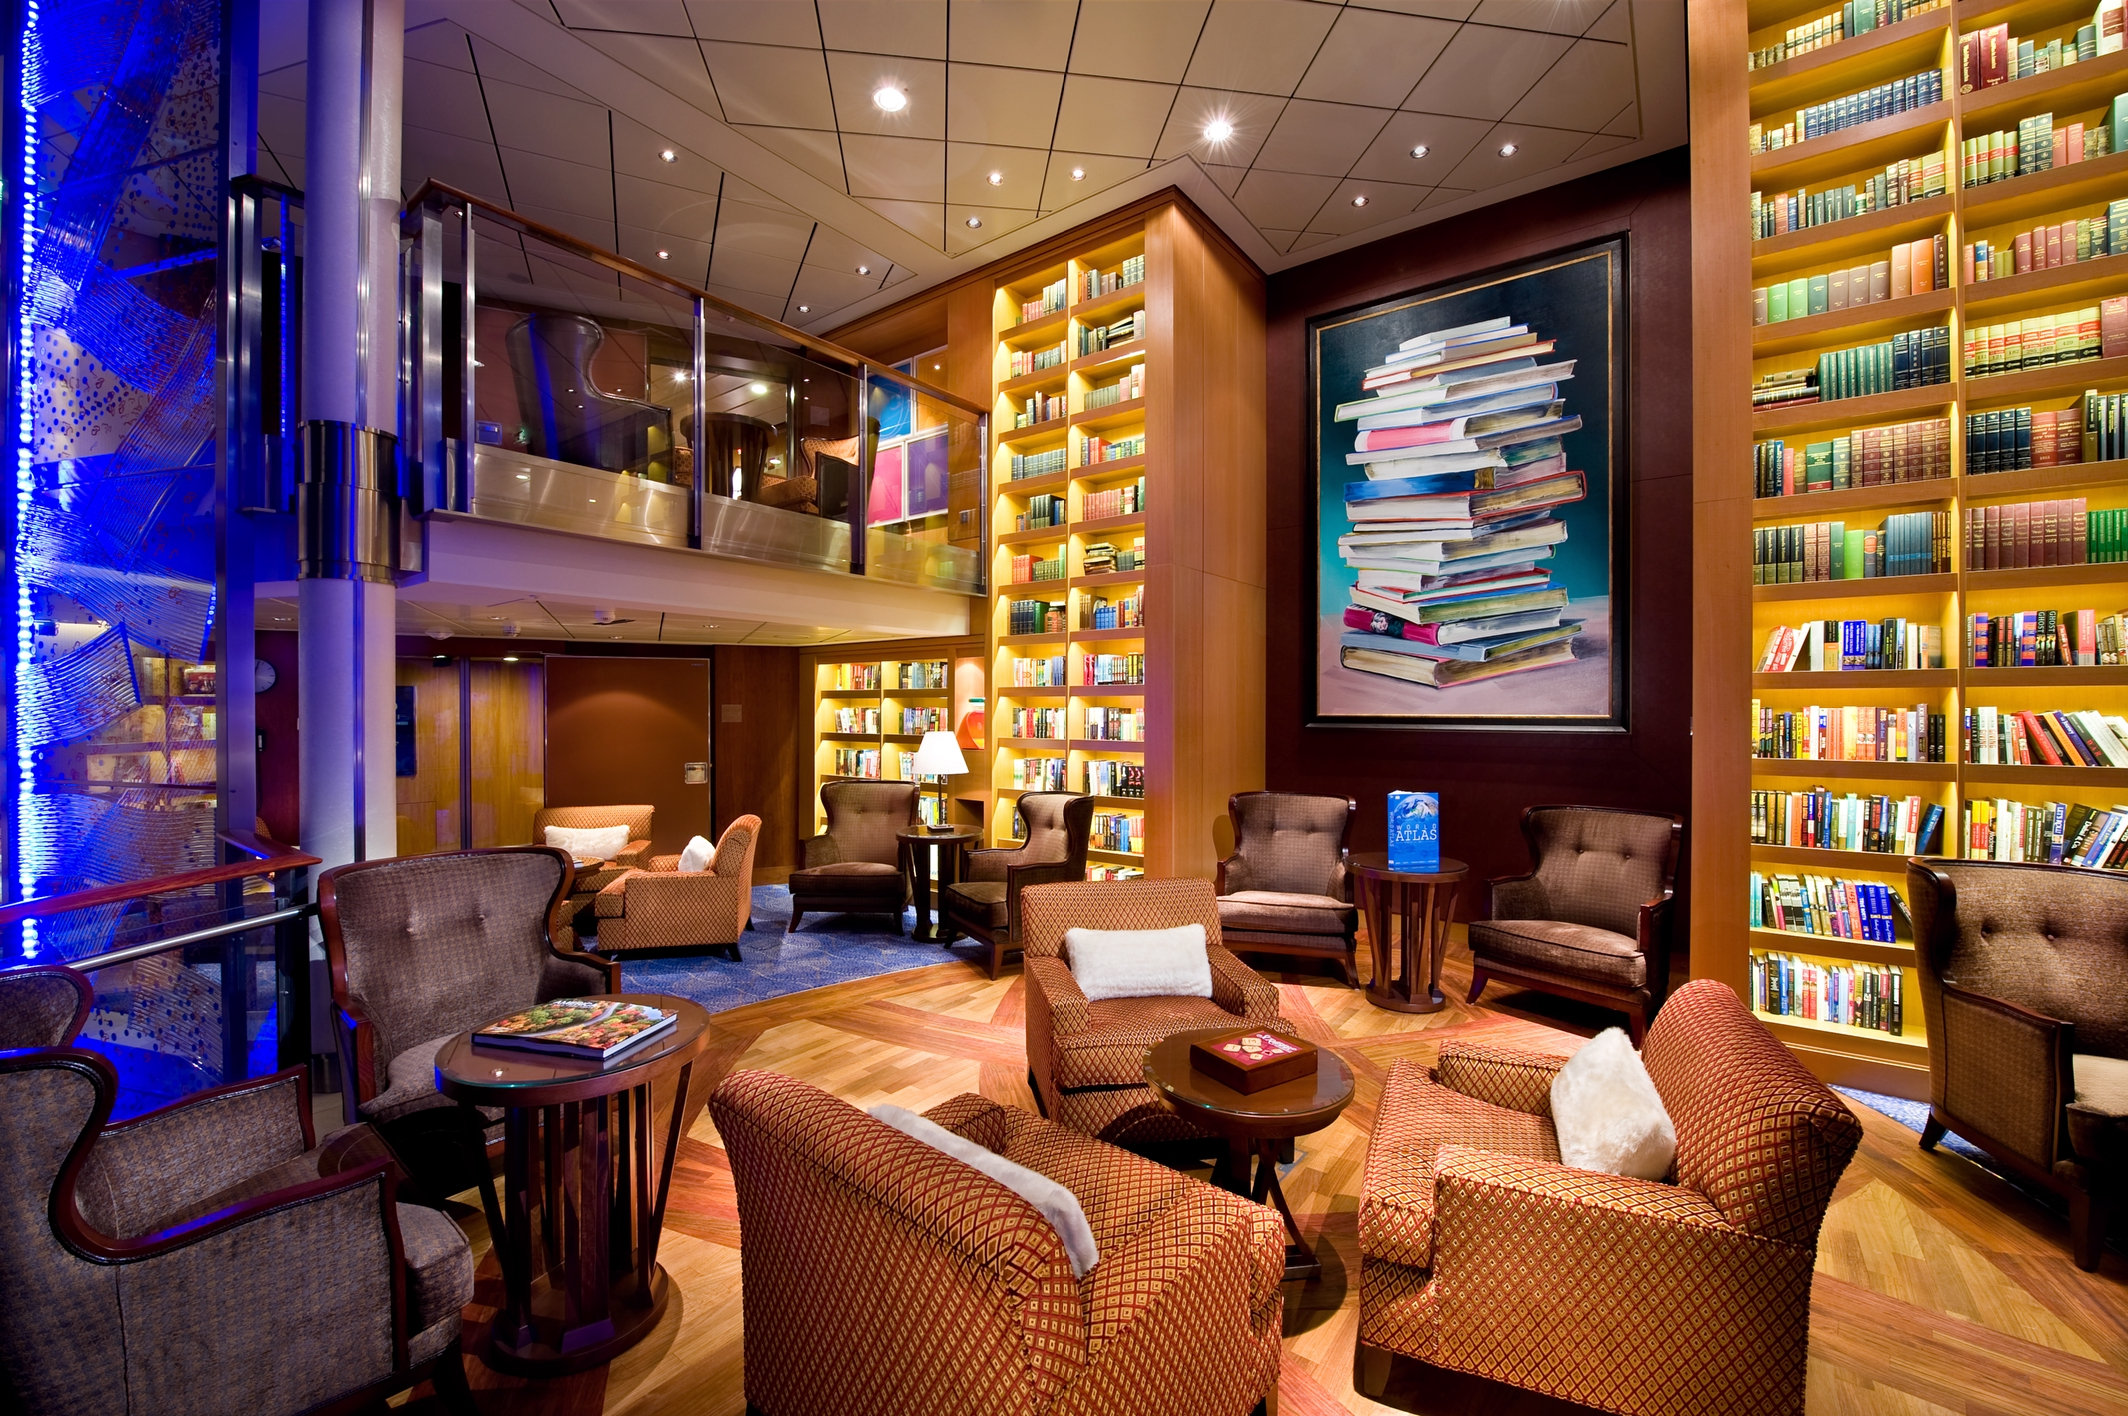 celebrity cruises celebrity solstice library.jpg